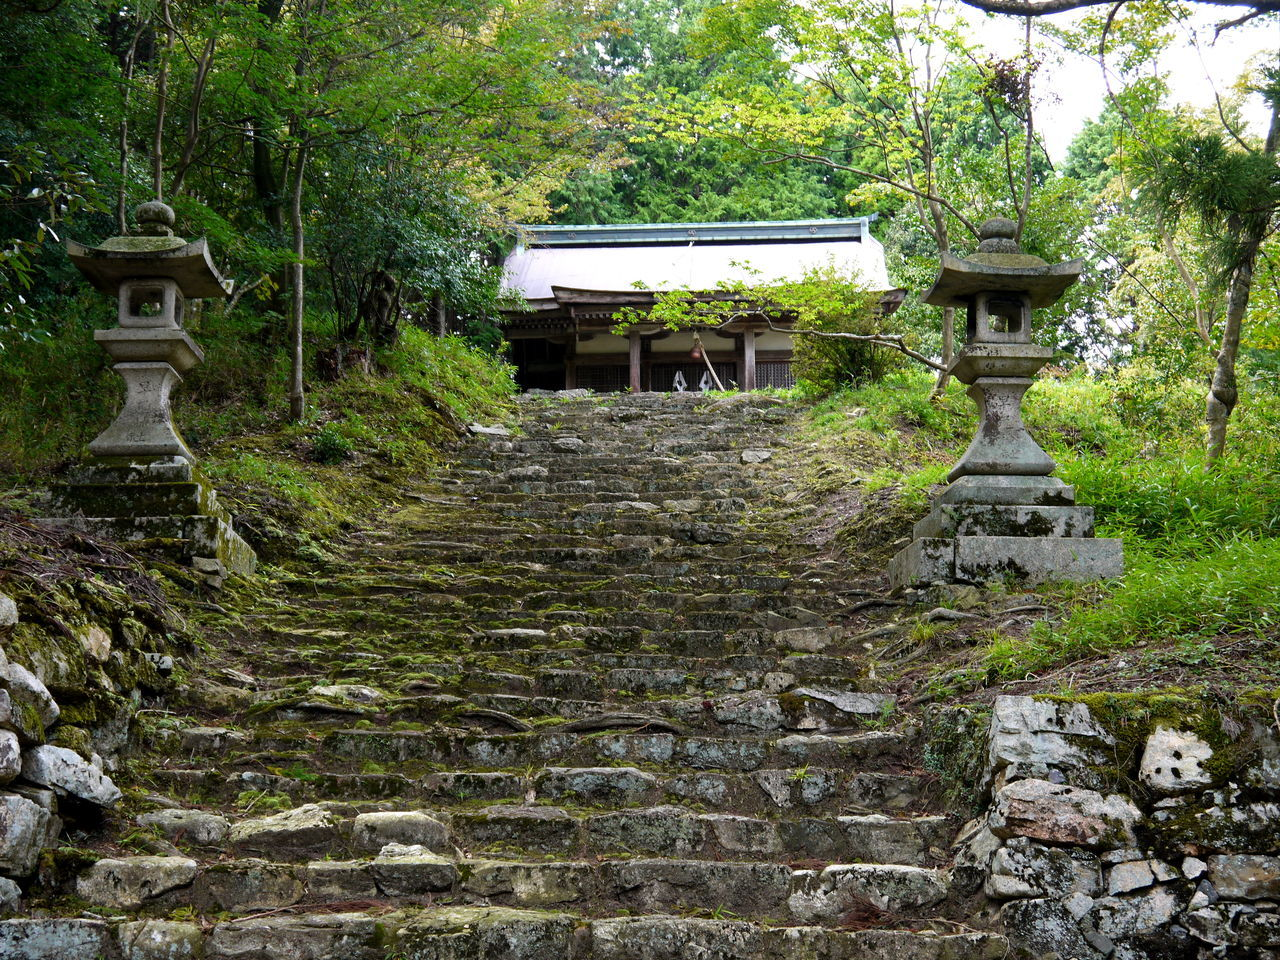 Climbing Japan Moss No People Old Rough Sakamoto Stone Lanterns Stone Material Stone Steps Temple The Past The Way Forward Tranquility Tree